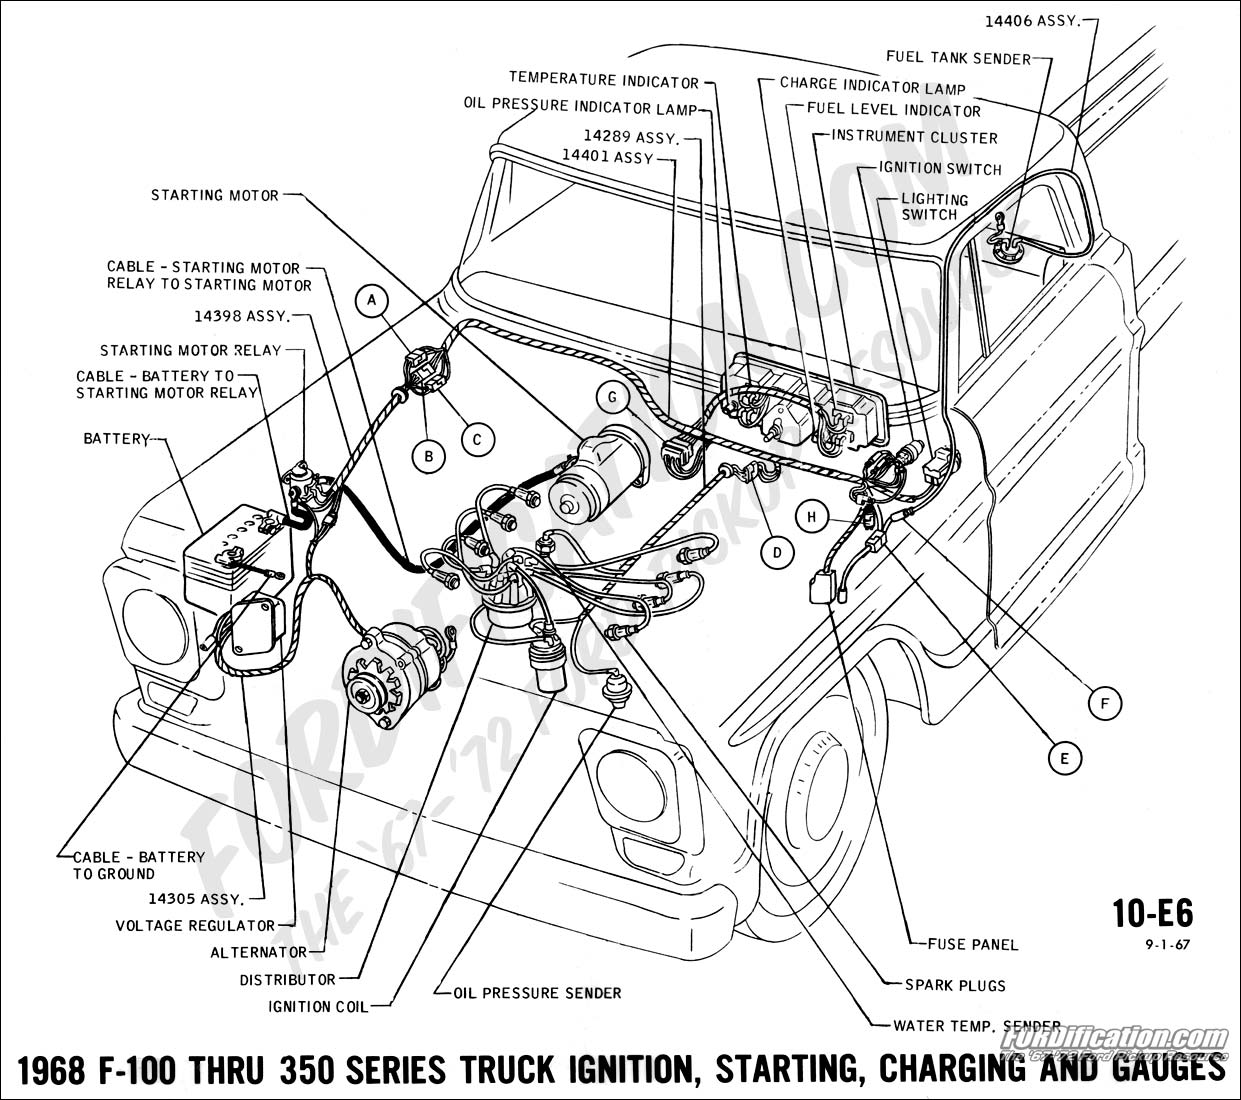 68 Mustang Dash Wiring Diagram Simple Guide About Gentex 177 Ford Truck Technical Drawings And Schematics Section H